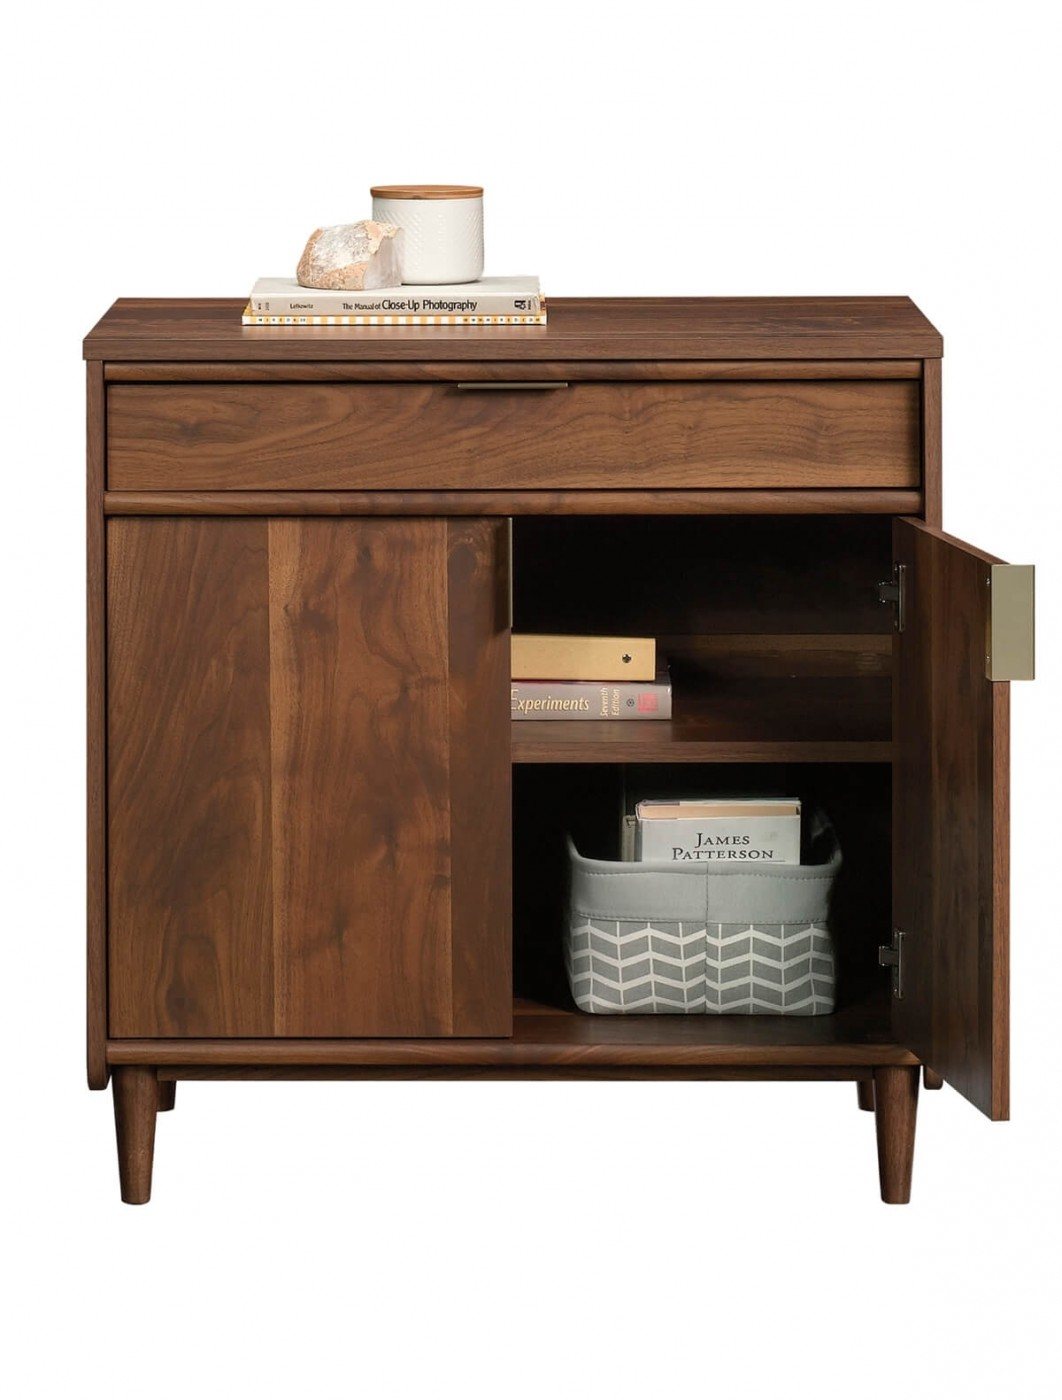 Home Office Storage   Clifton Place Walnut Sideboard 5421115   Enlarged View